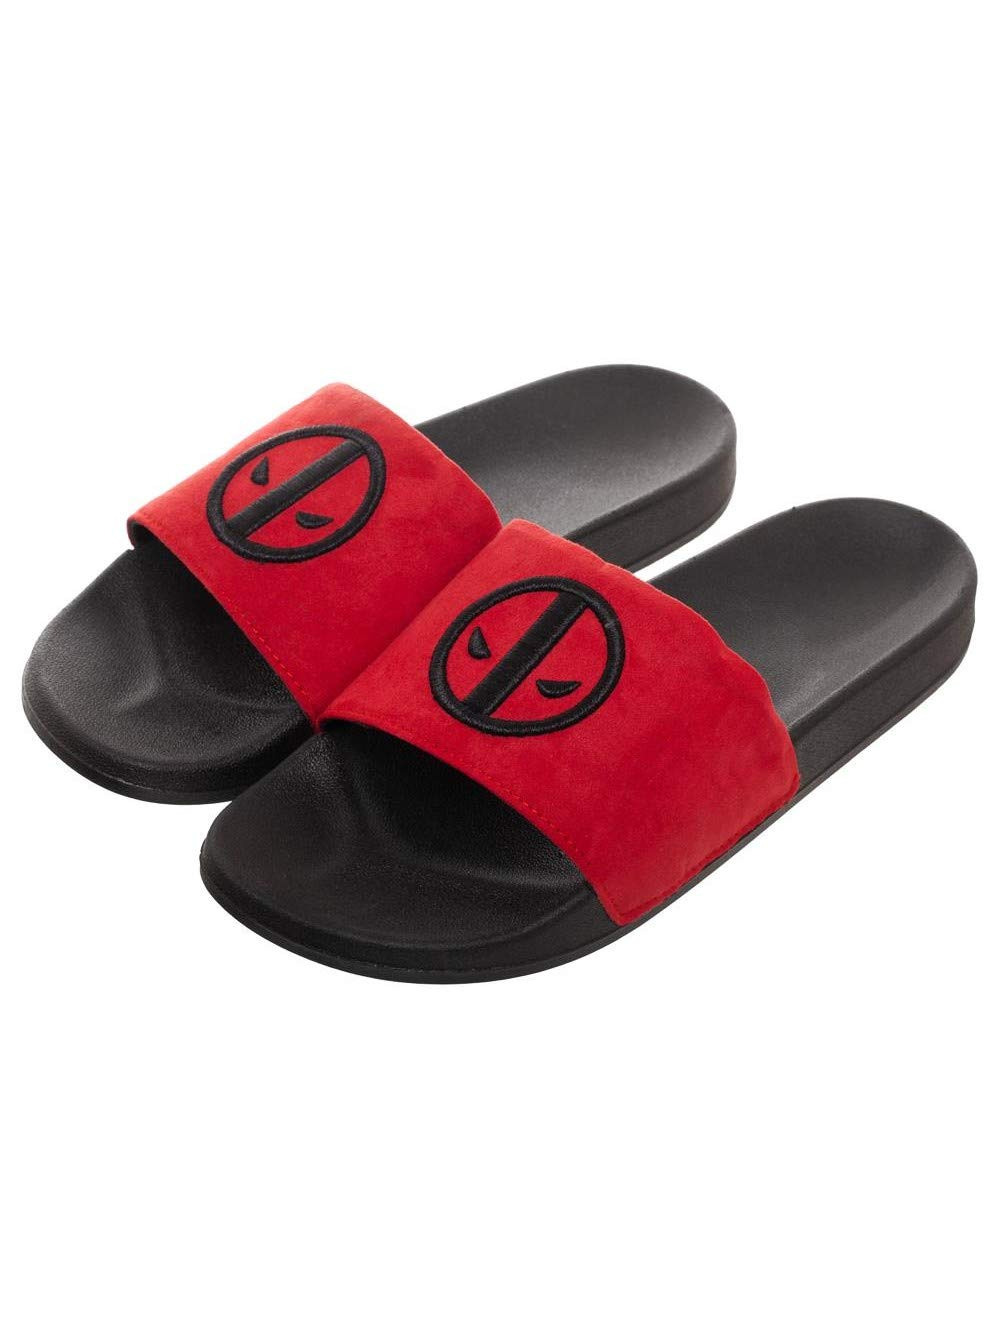 Marvel Deadpool Black Insignia Red Slide Sandals